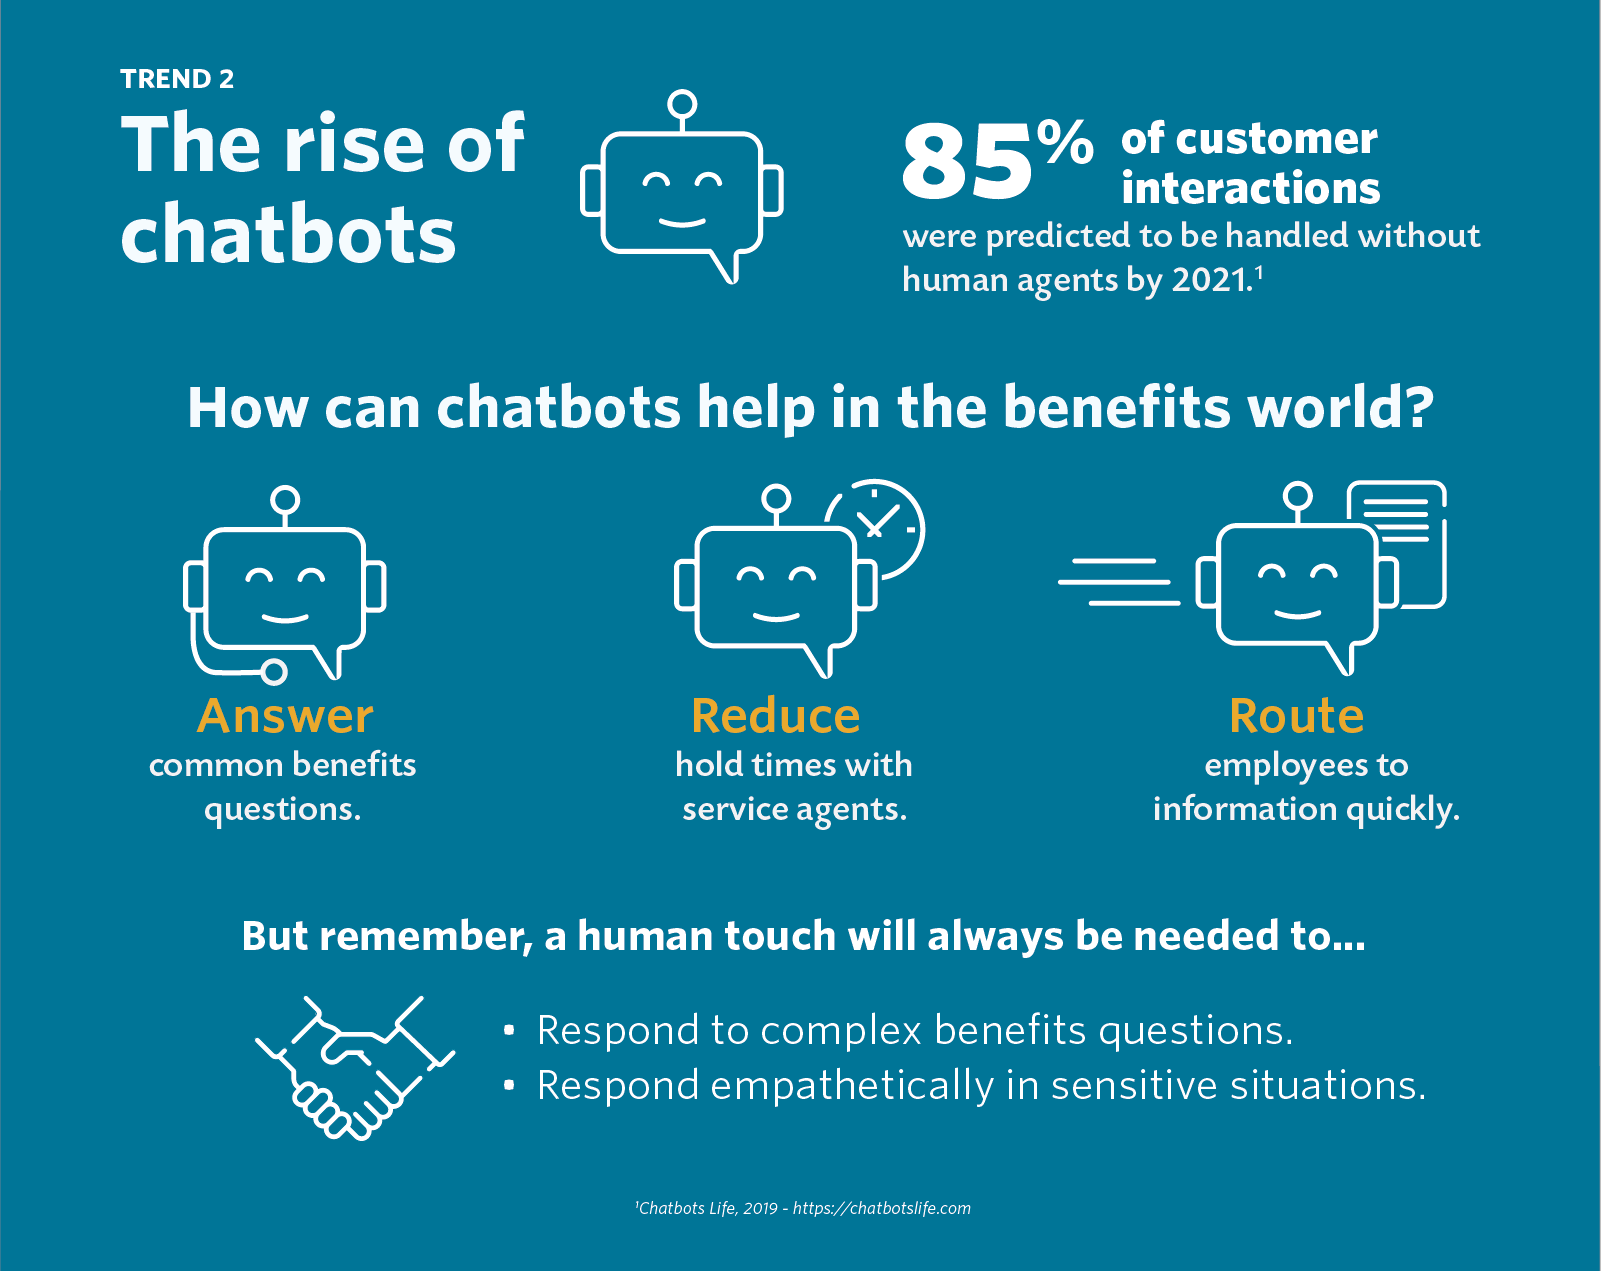 Trend 2 - The rise of chatbots